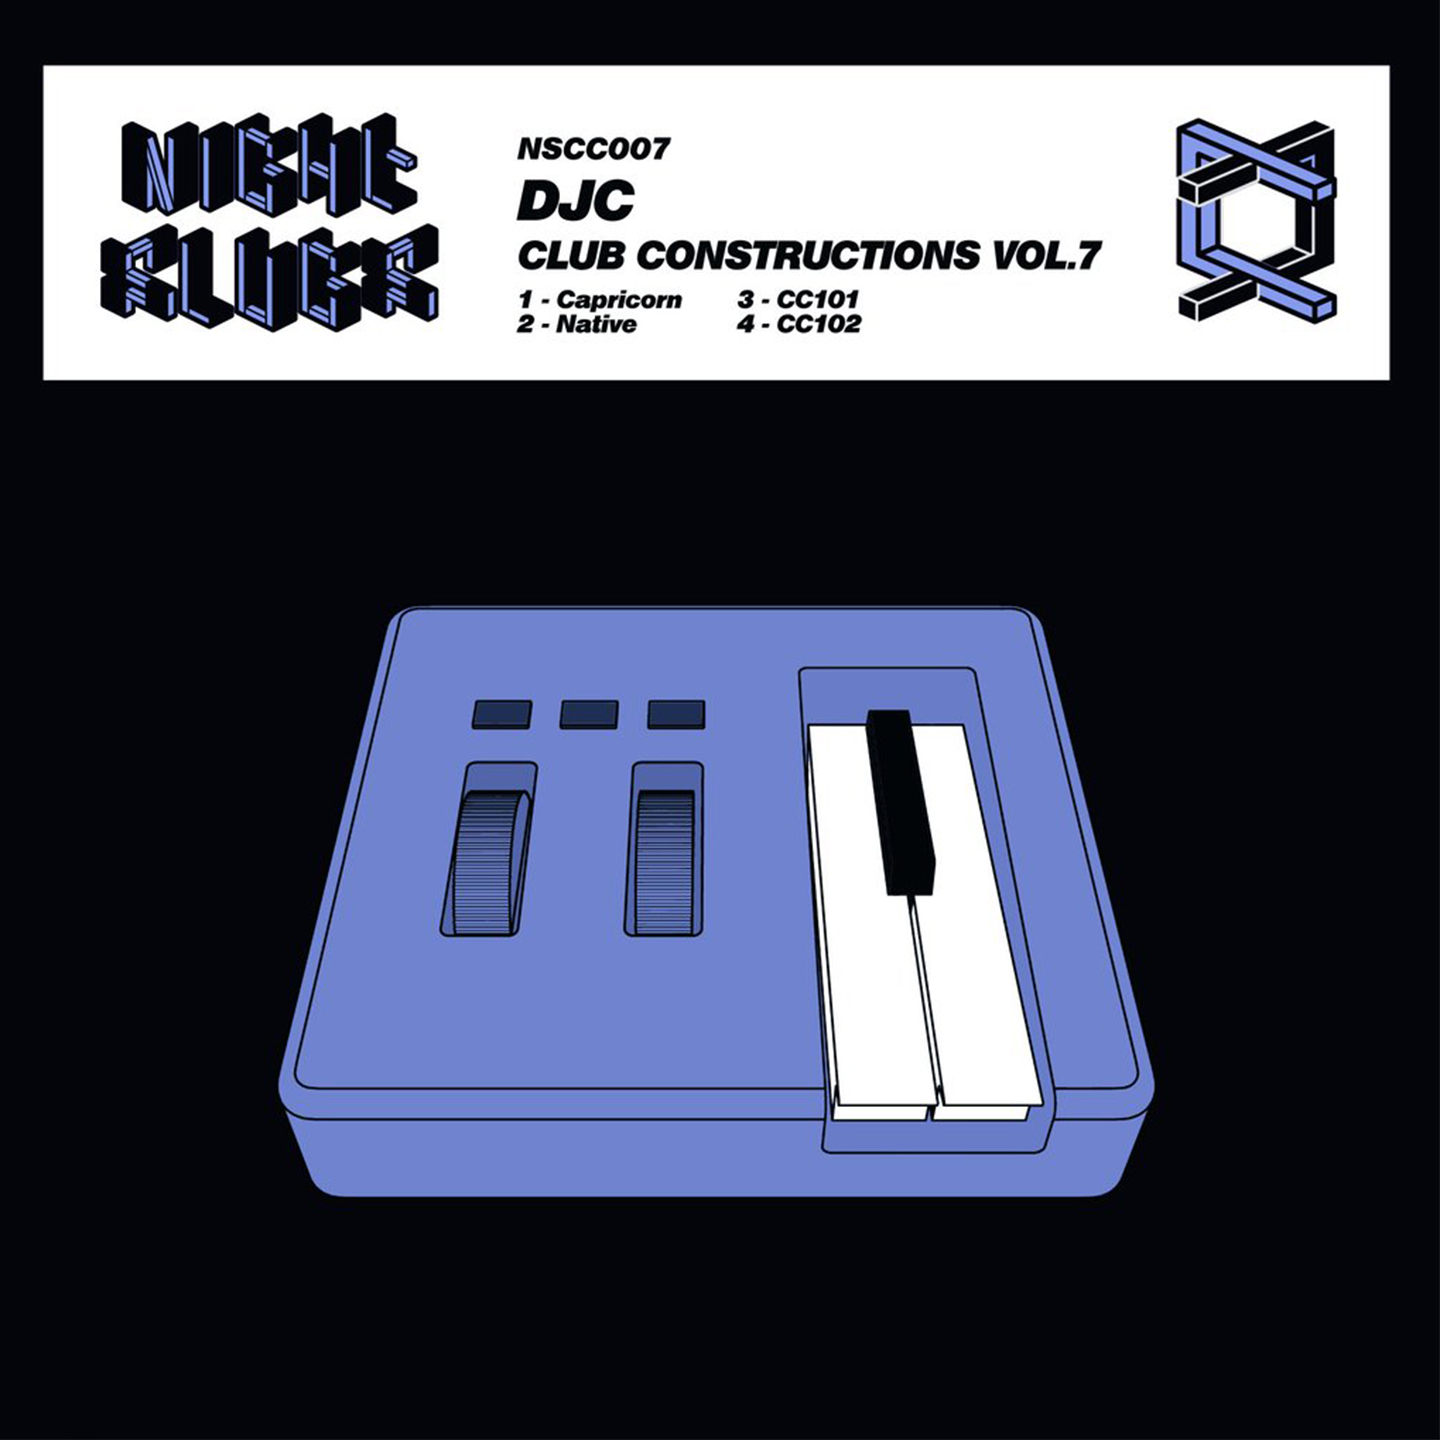 DJC - Club Constructions Vol. 7